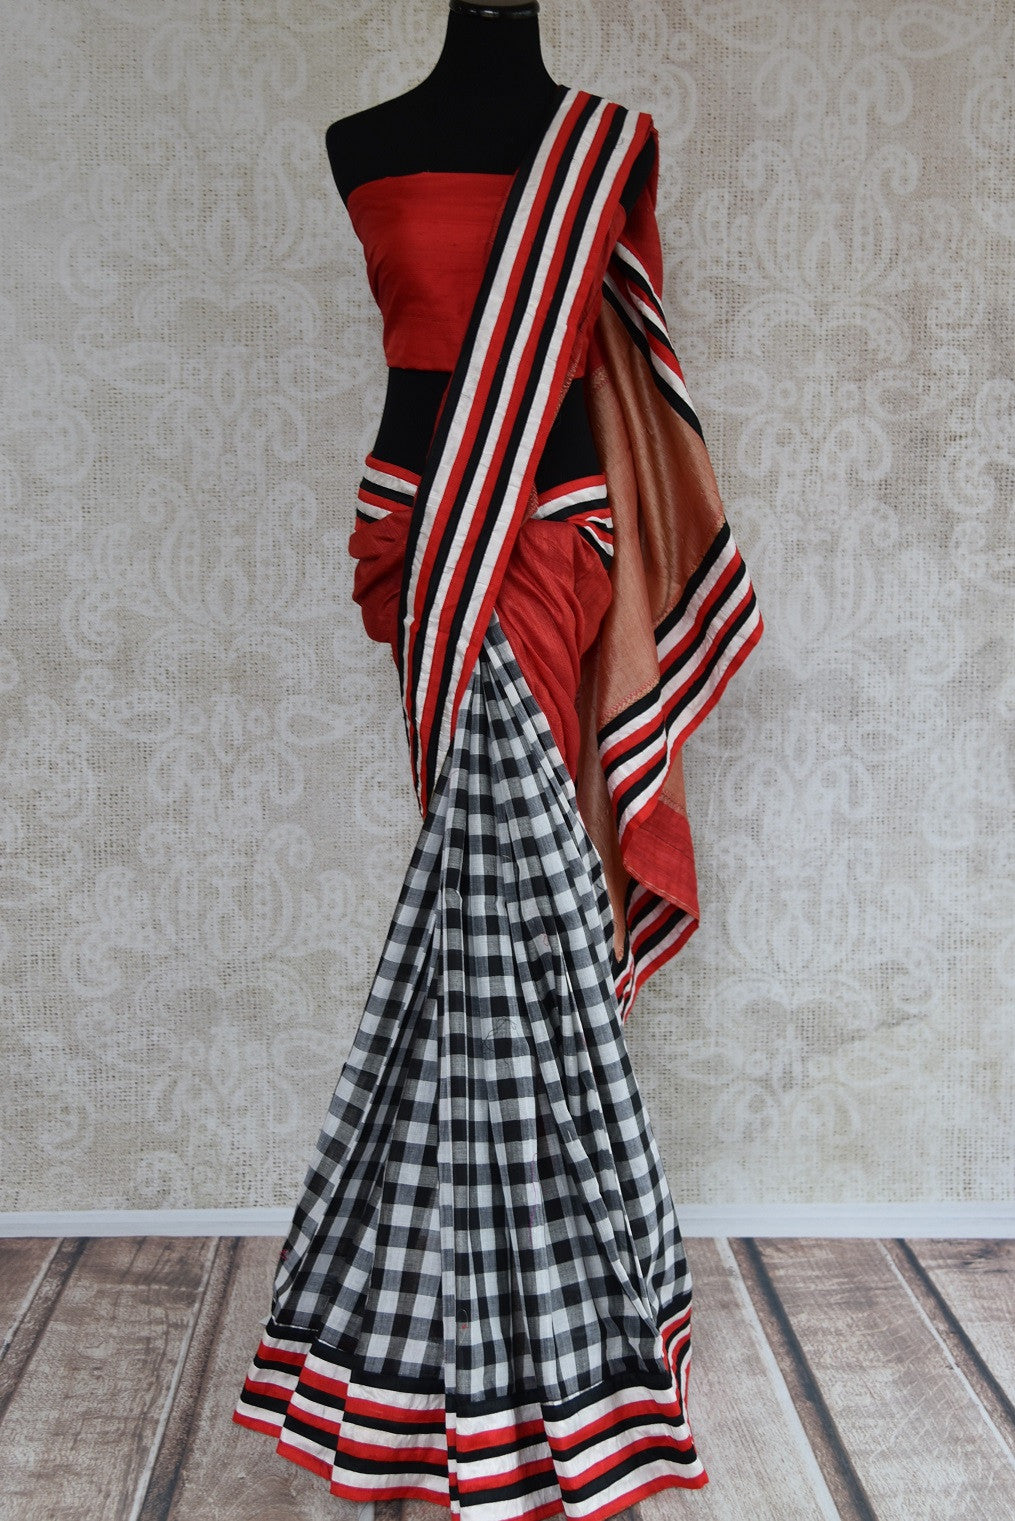 90B508 Bold half-matka and half chanderi party wear saree. The black, white and red saree also has checks and can be bought online at our Indian fashion store in USA.